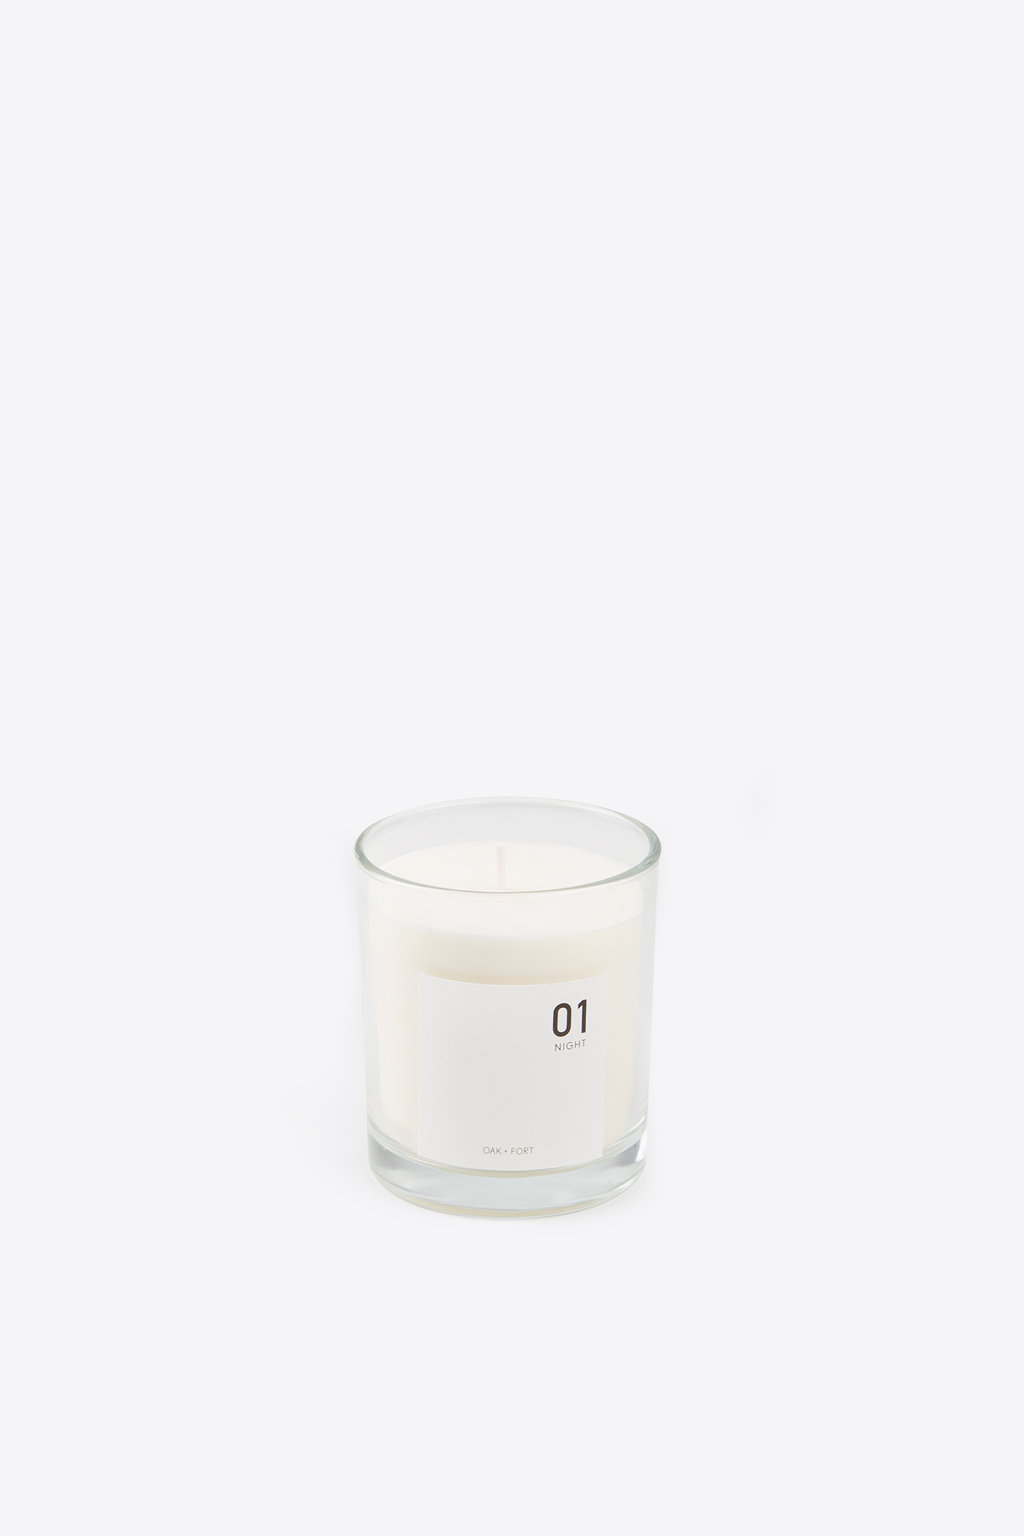 01 Night Candle 1035 Cream 2